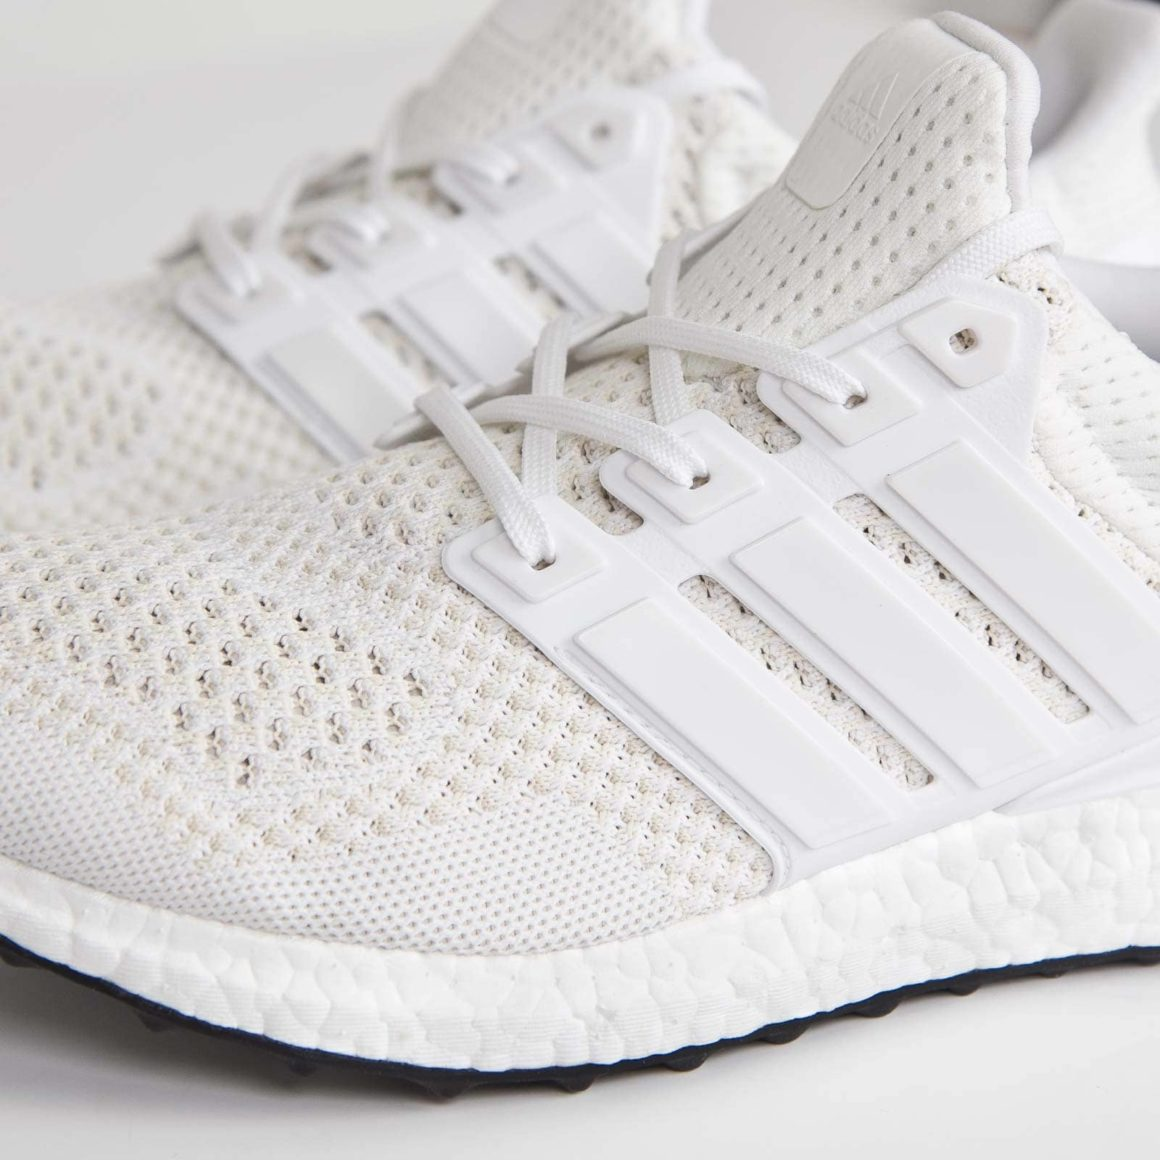 adidas-ultraboost-tirple-white-S77416-release